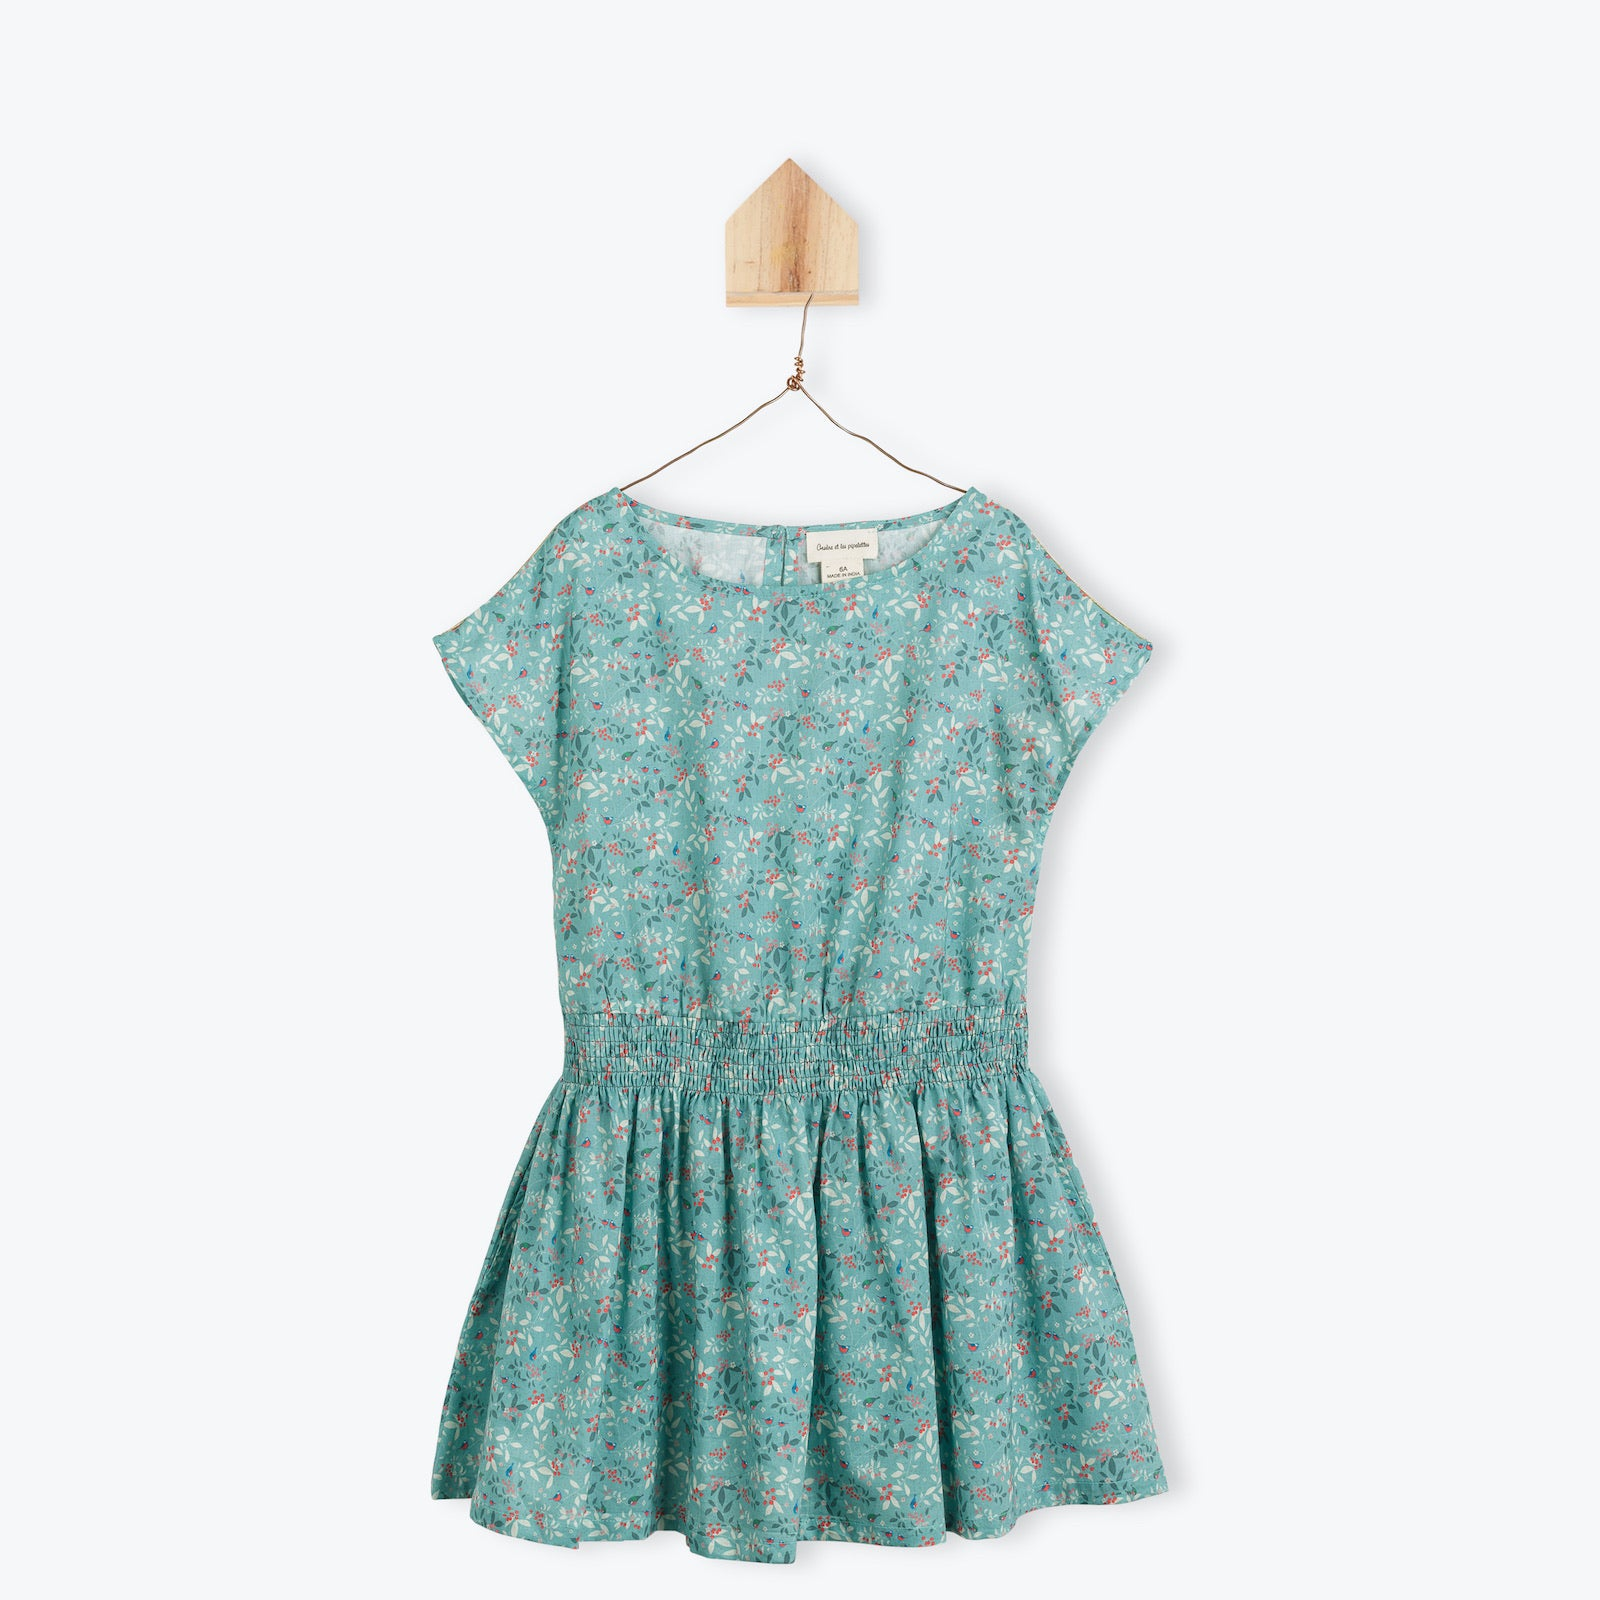 Bird and floral print 1pc dress